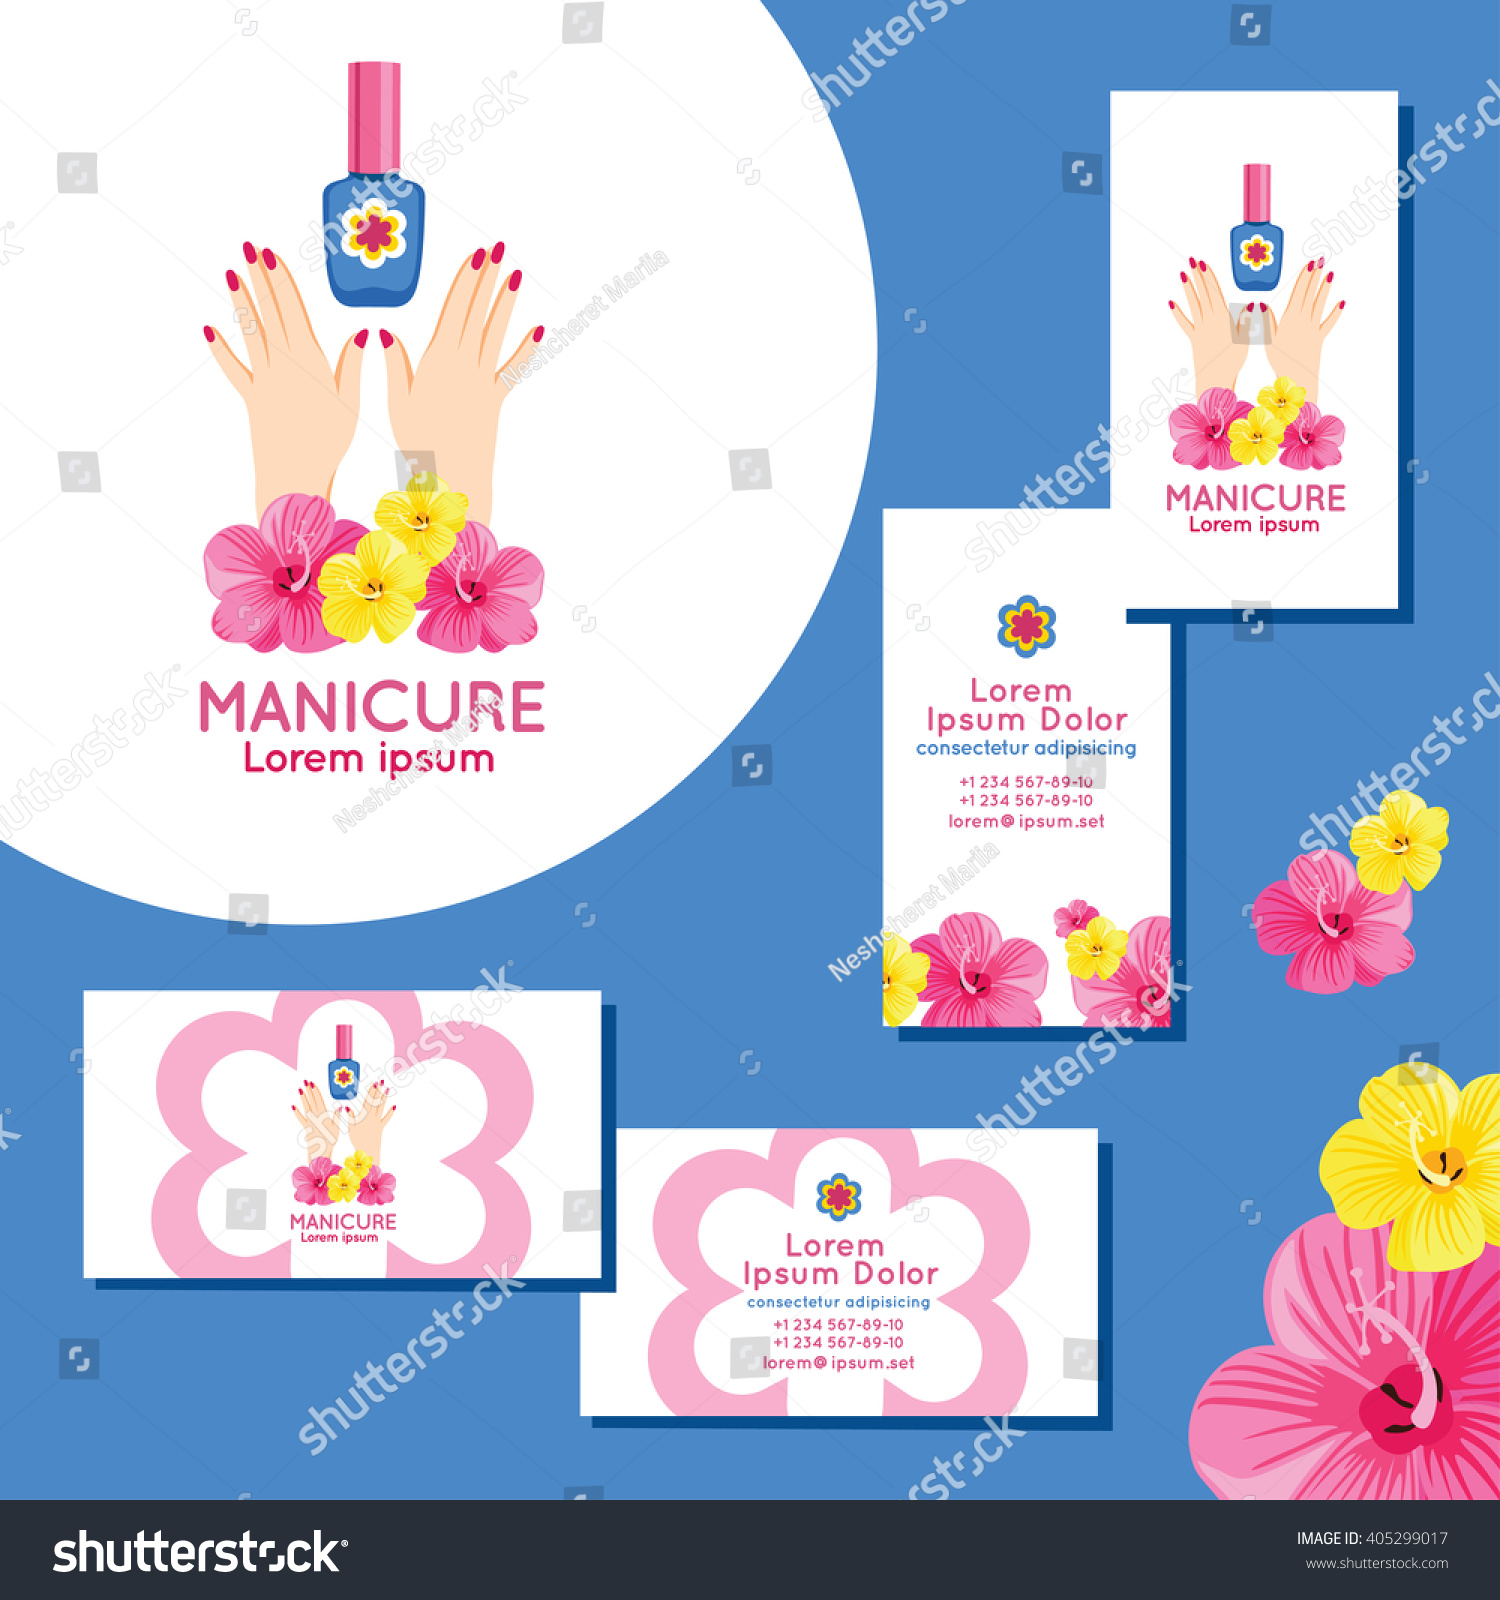 Manicure Logo Set Business Cards Manicure Stock Vector 405299017 ...